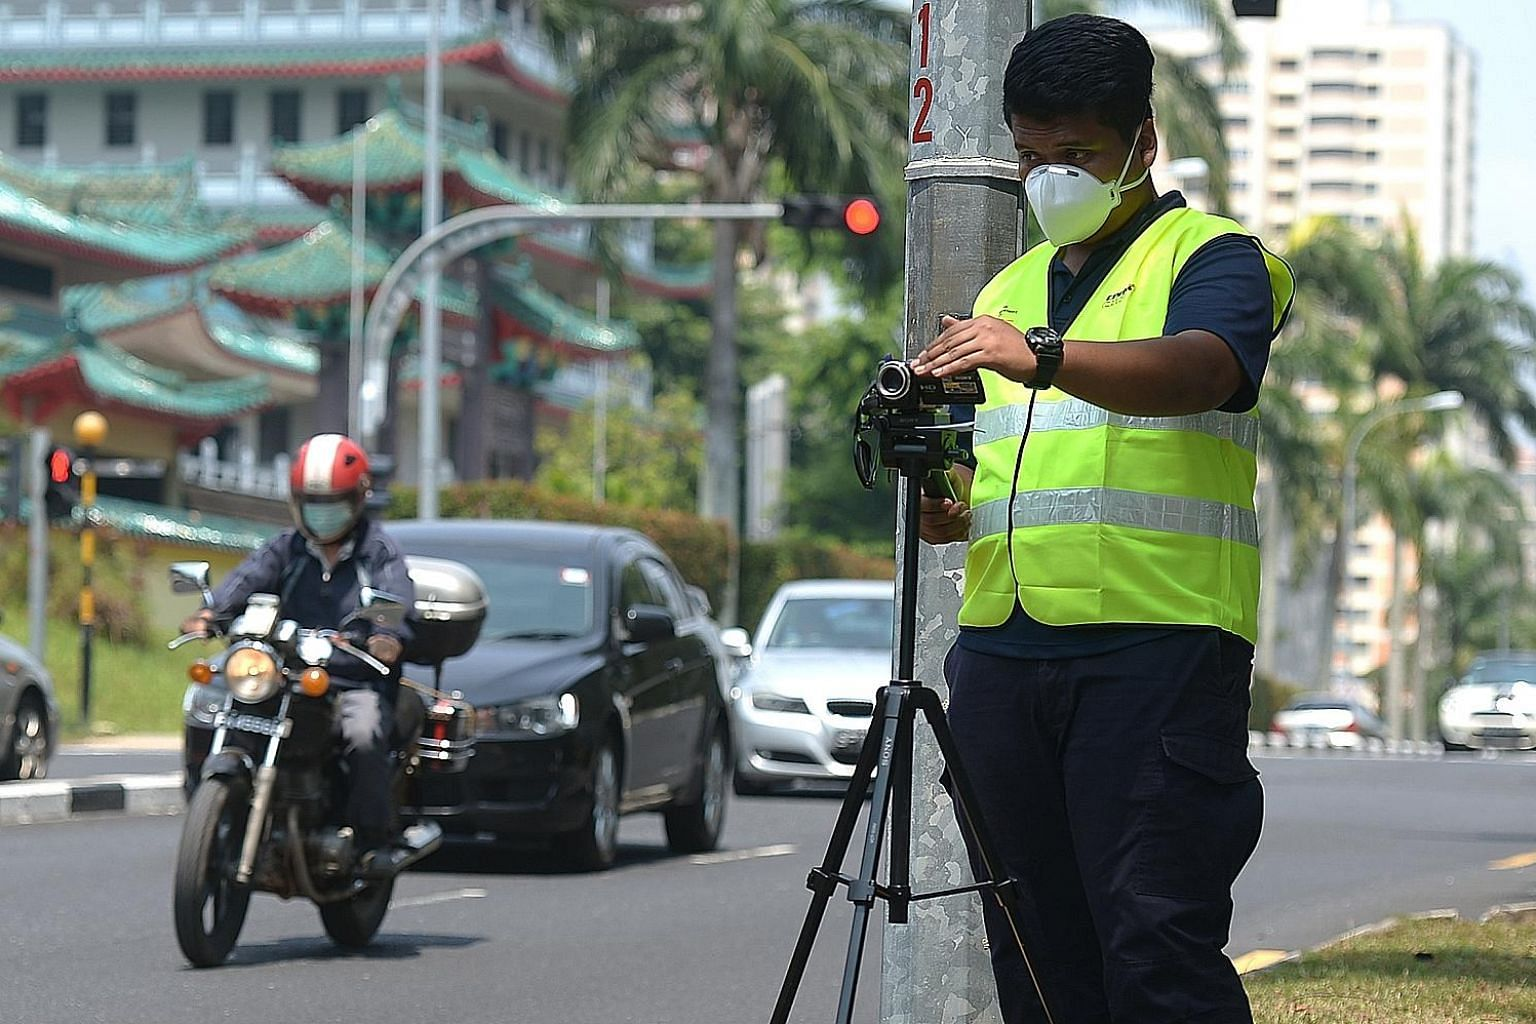 An enforcement officer looking out for smoky vehicles on the road. Starting next month, the National Environment Agency will accept results from the Worldwide Harmonised Light Vehicles Test Procedure, which measures both the fuel consumption and poll